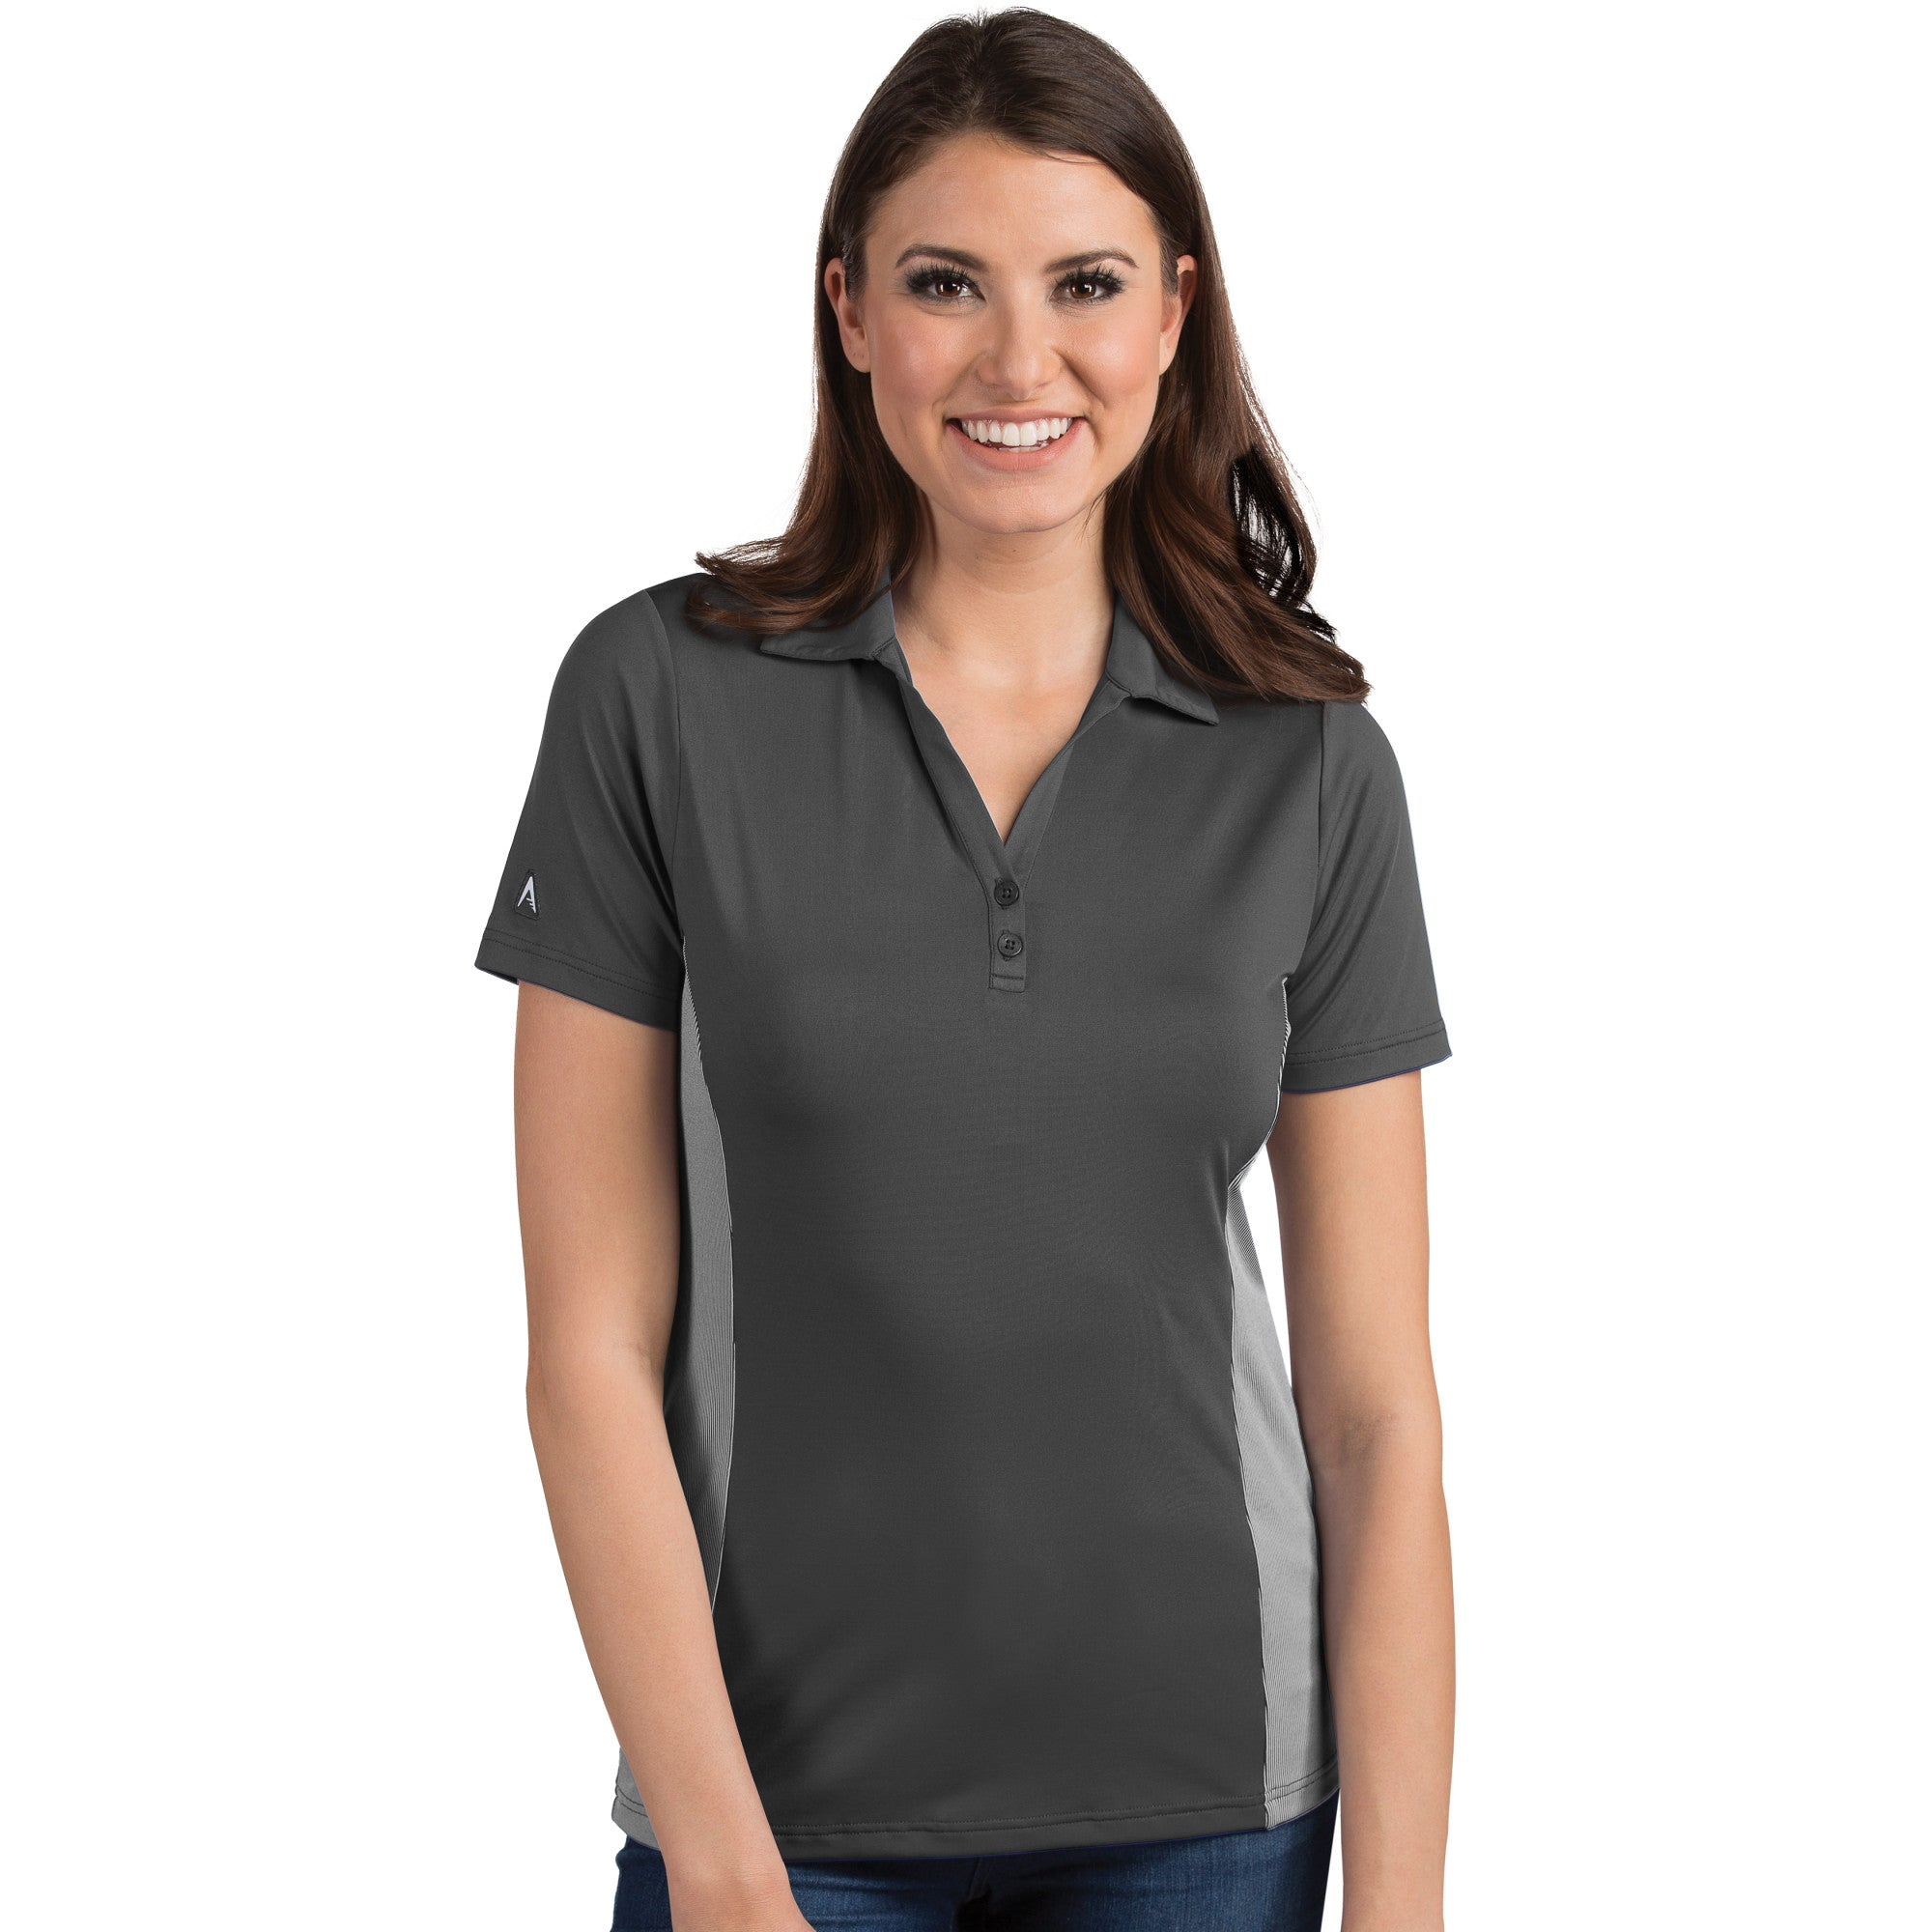 Antigua Women's Venture Polo Smoke